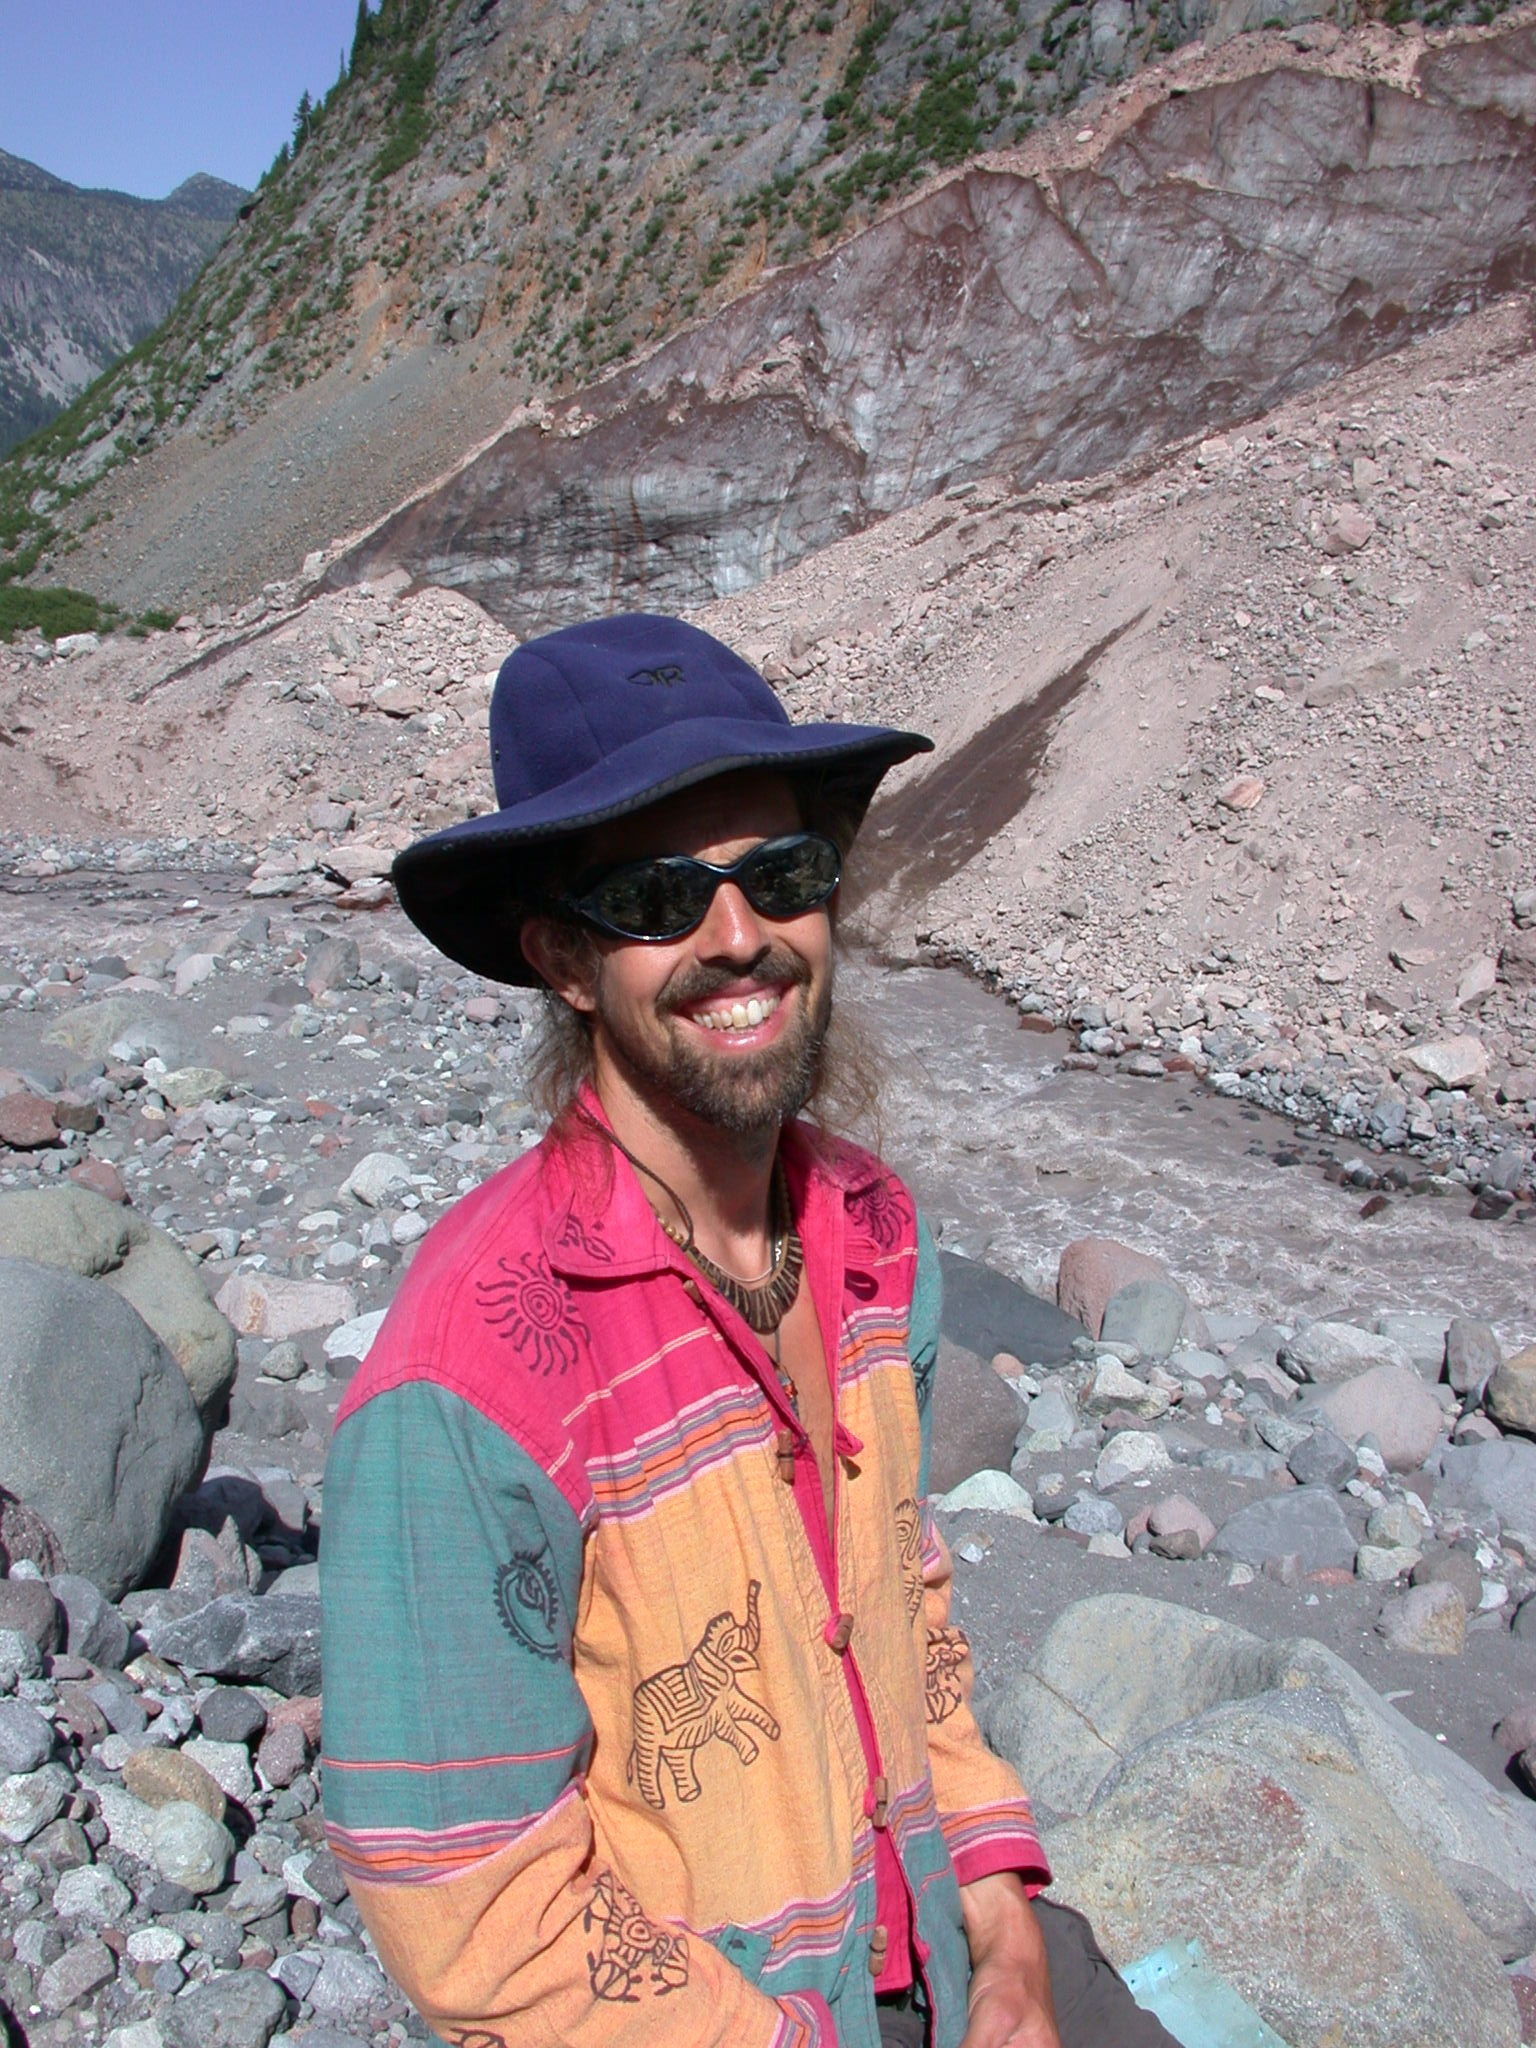 Fruitboy in Glacial Valley of Mount Rainier